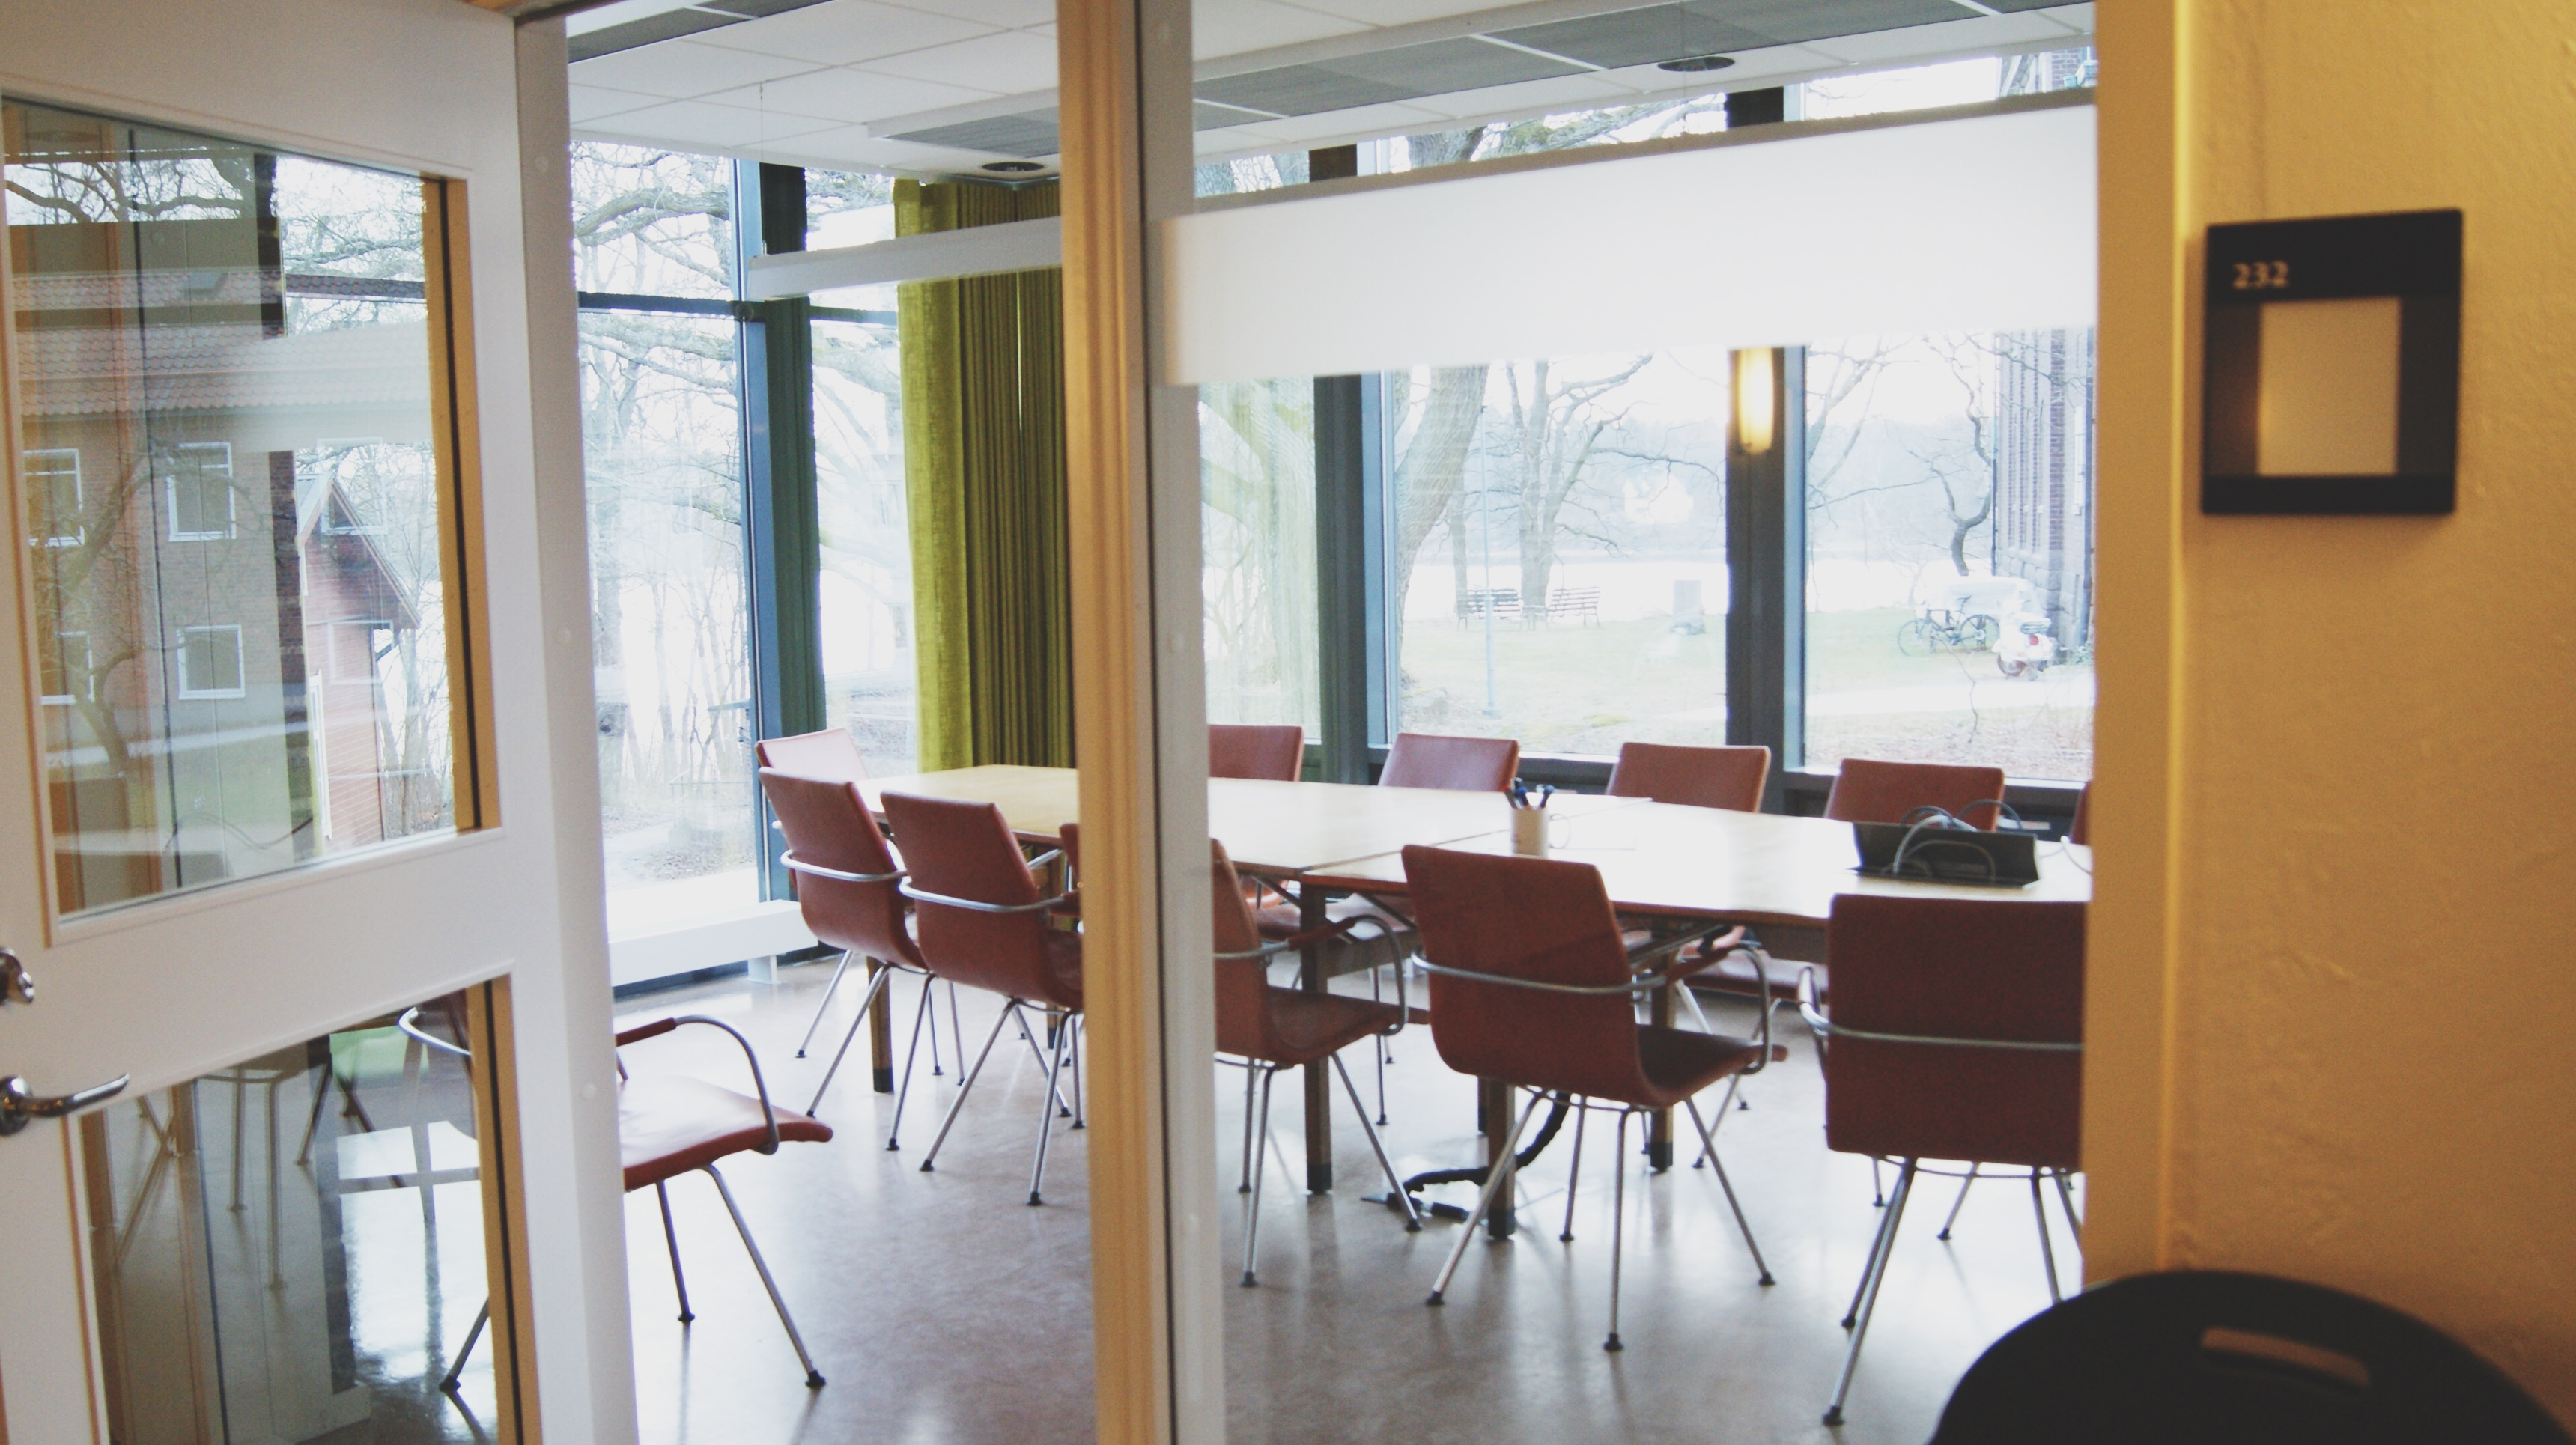 The GEL conference room